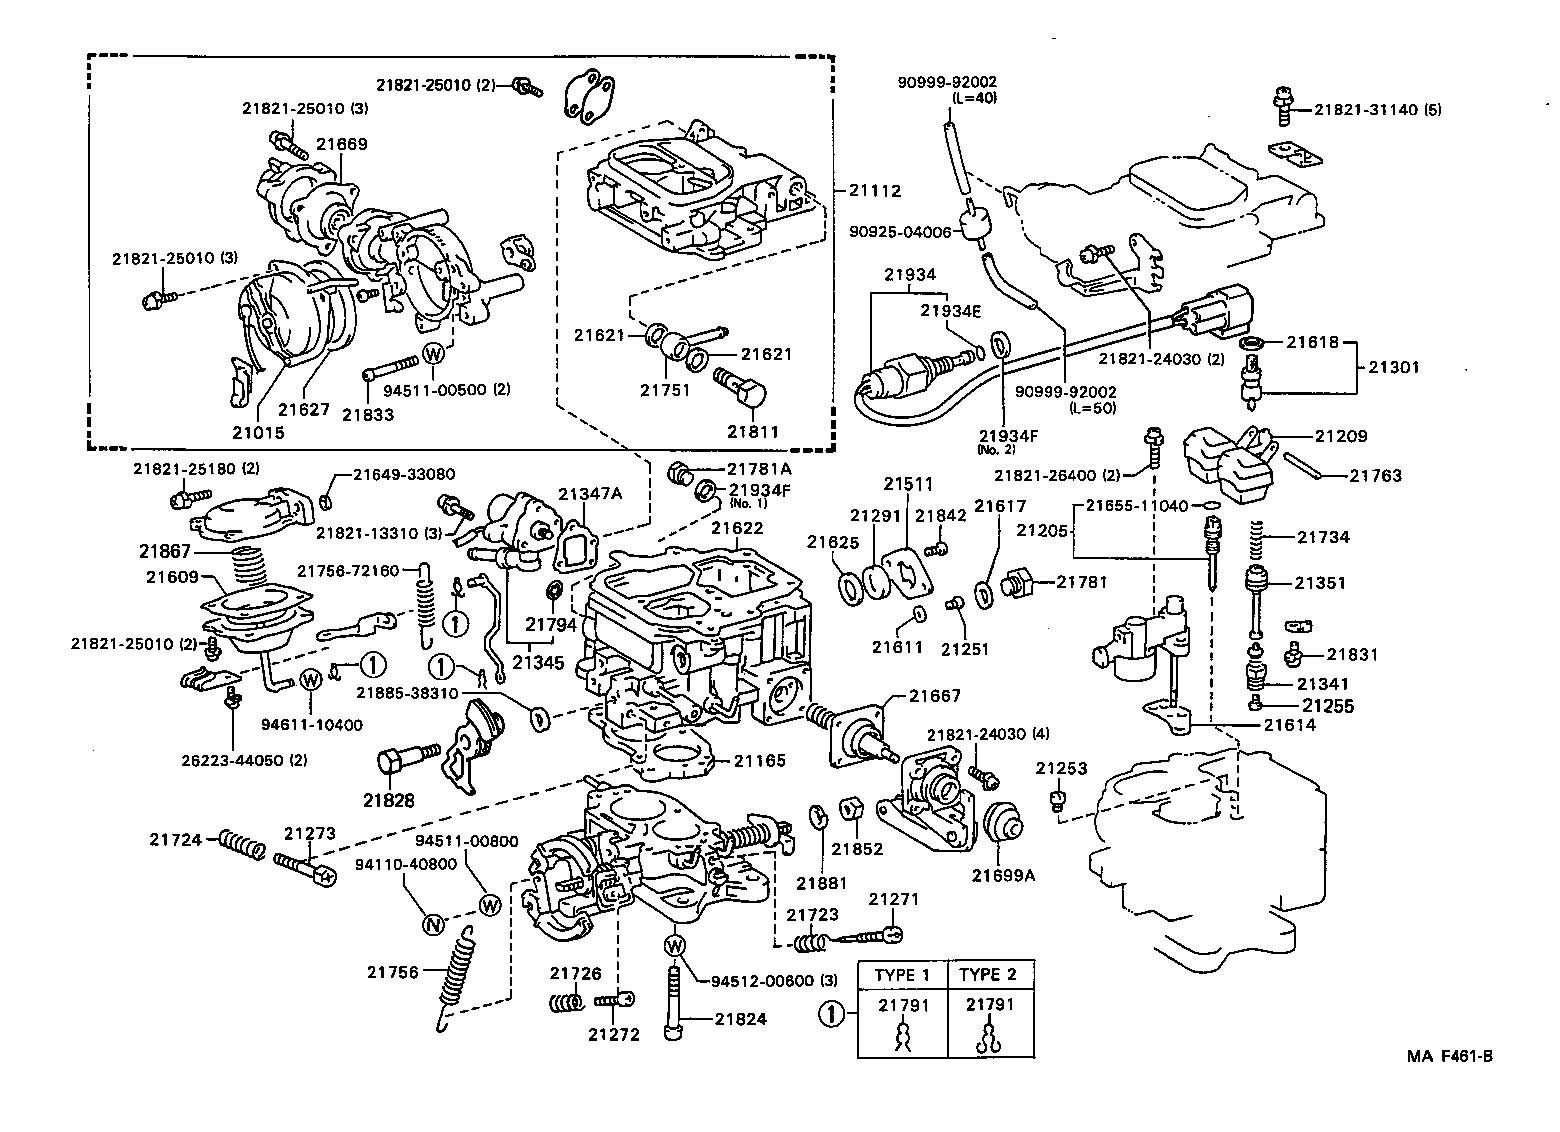 1985 TOYOTA PICKUP ENGINE DIAGRAM - Auto Electrical Wiring ...